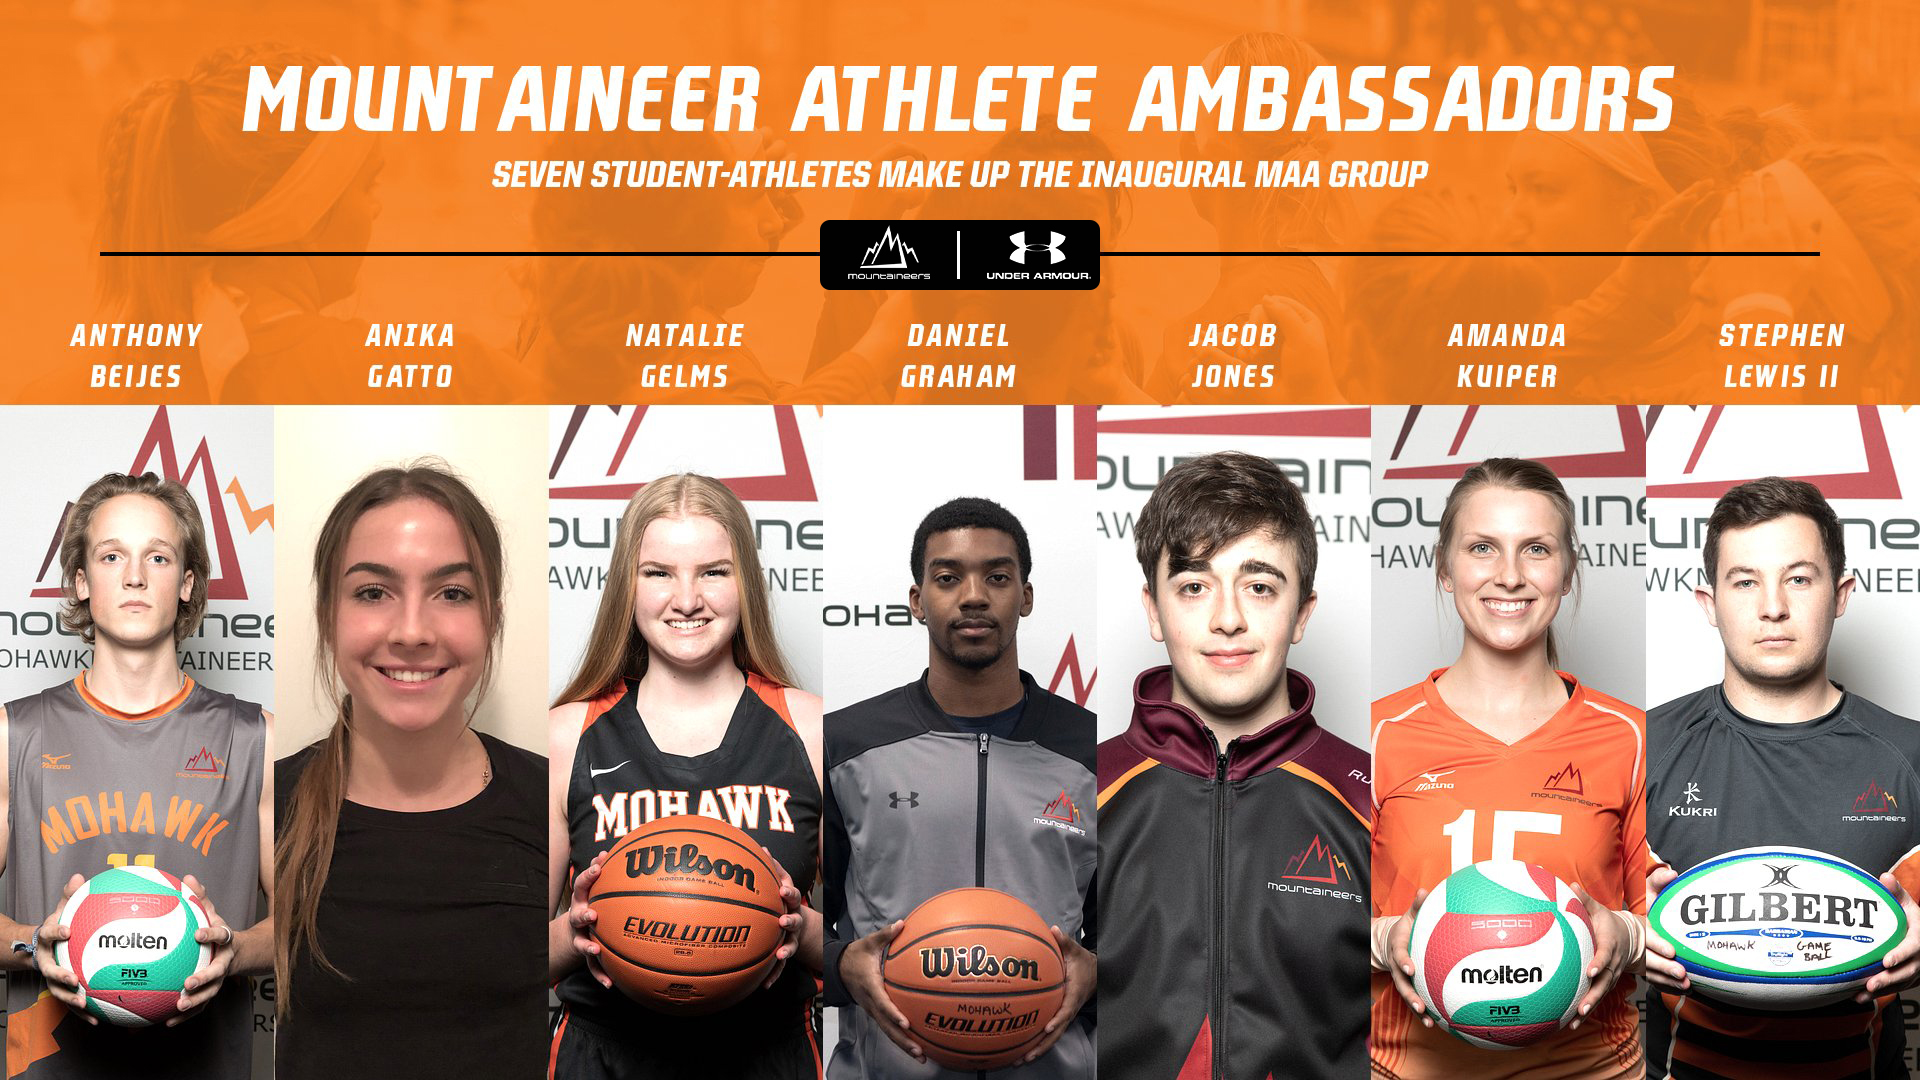 team members of the Mountaineer Athlete Ambassadors